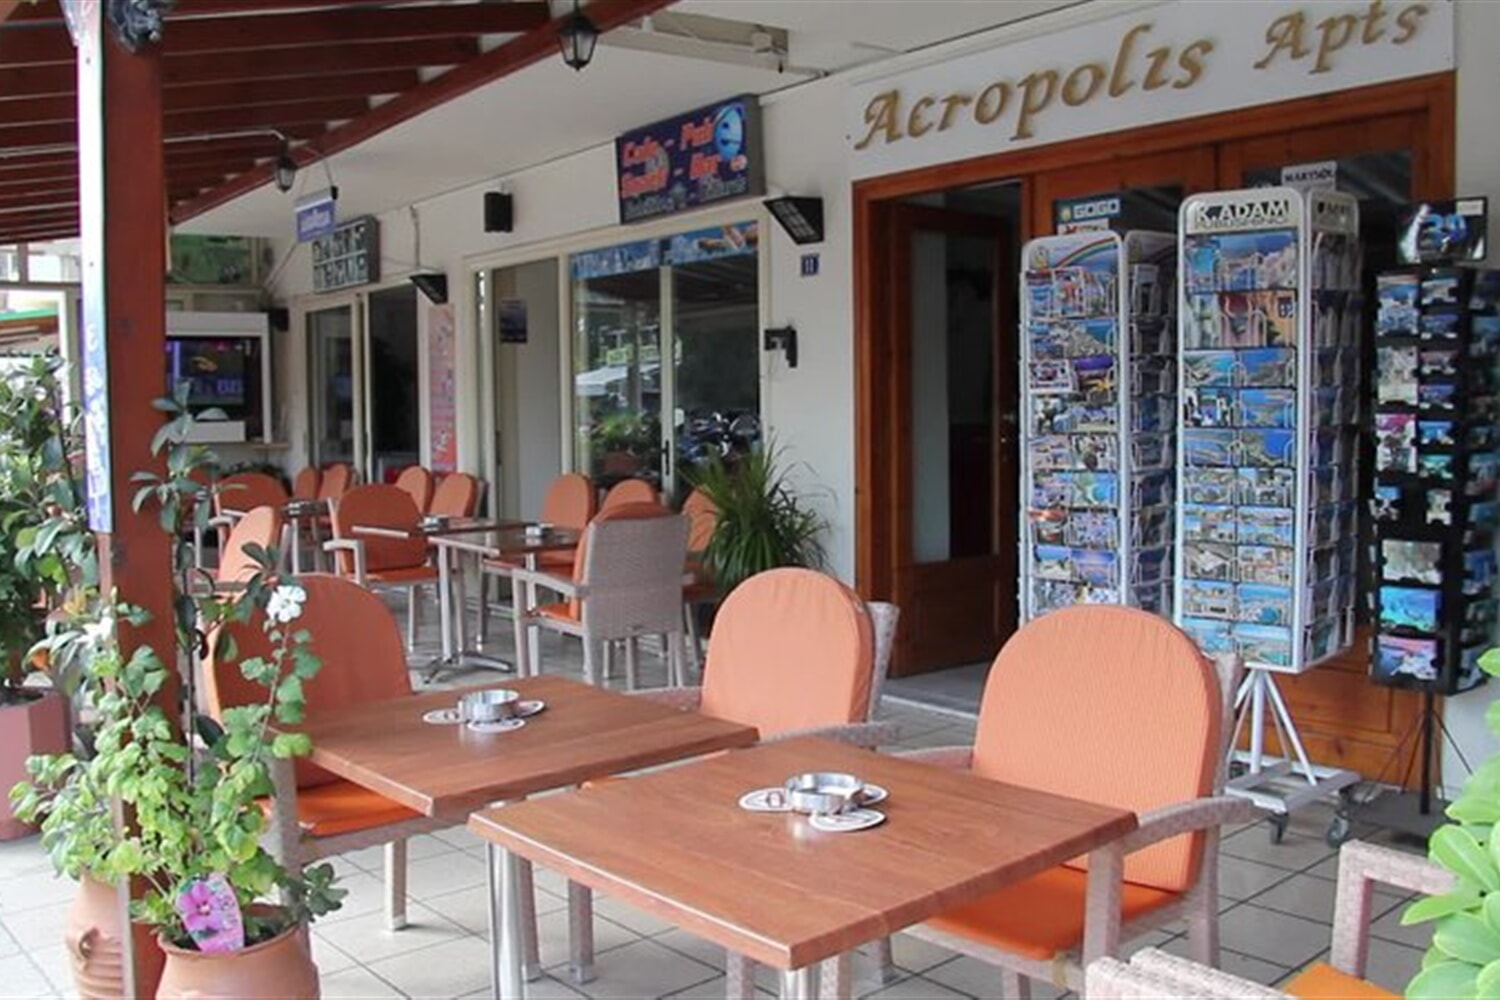 Отель Acropolis Apartments & Cafe Restaurant